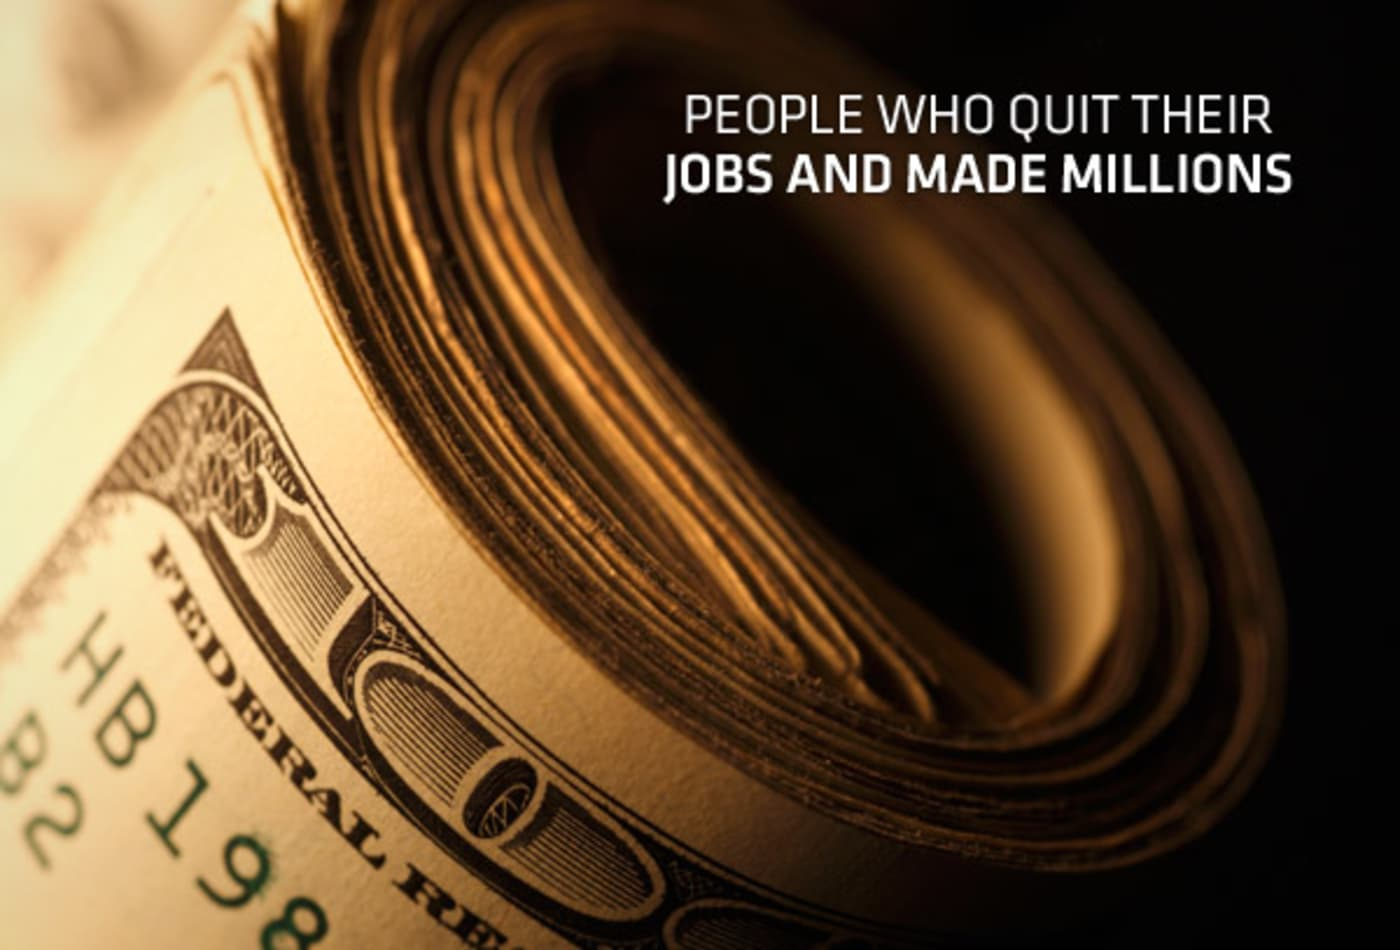 people-who-quit-jobs-millions-cover.jpg